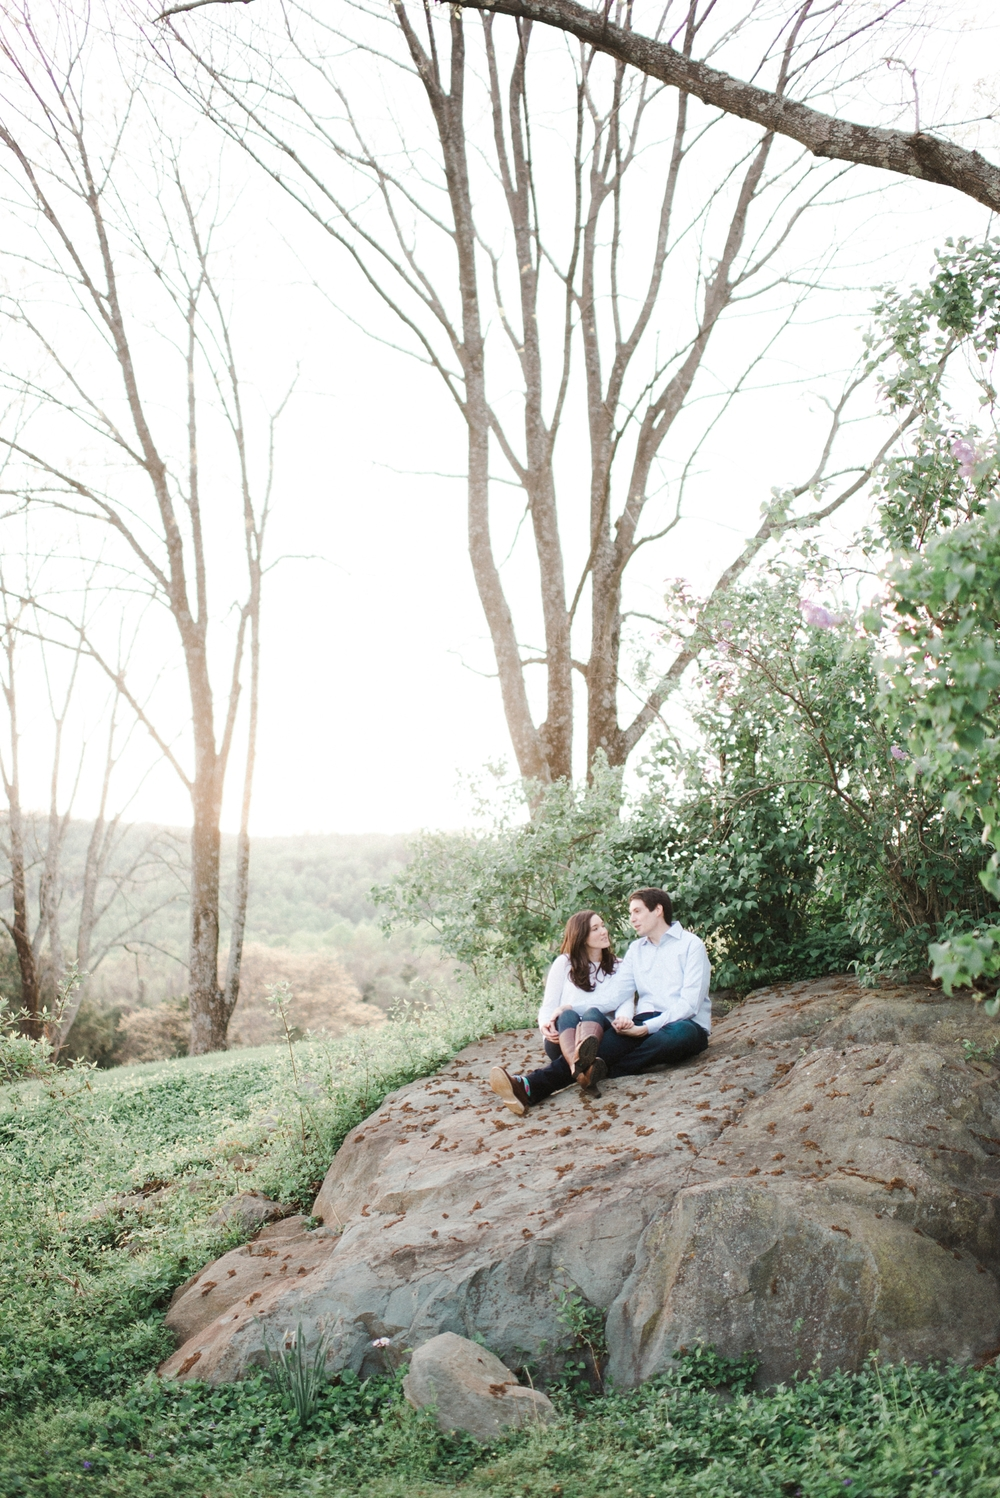 virginia_wedding_photographer_charlottesville_engagemnet_ashlawn_highland_0033.jpg